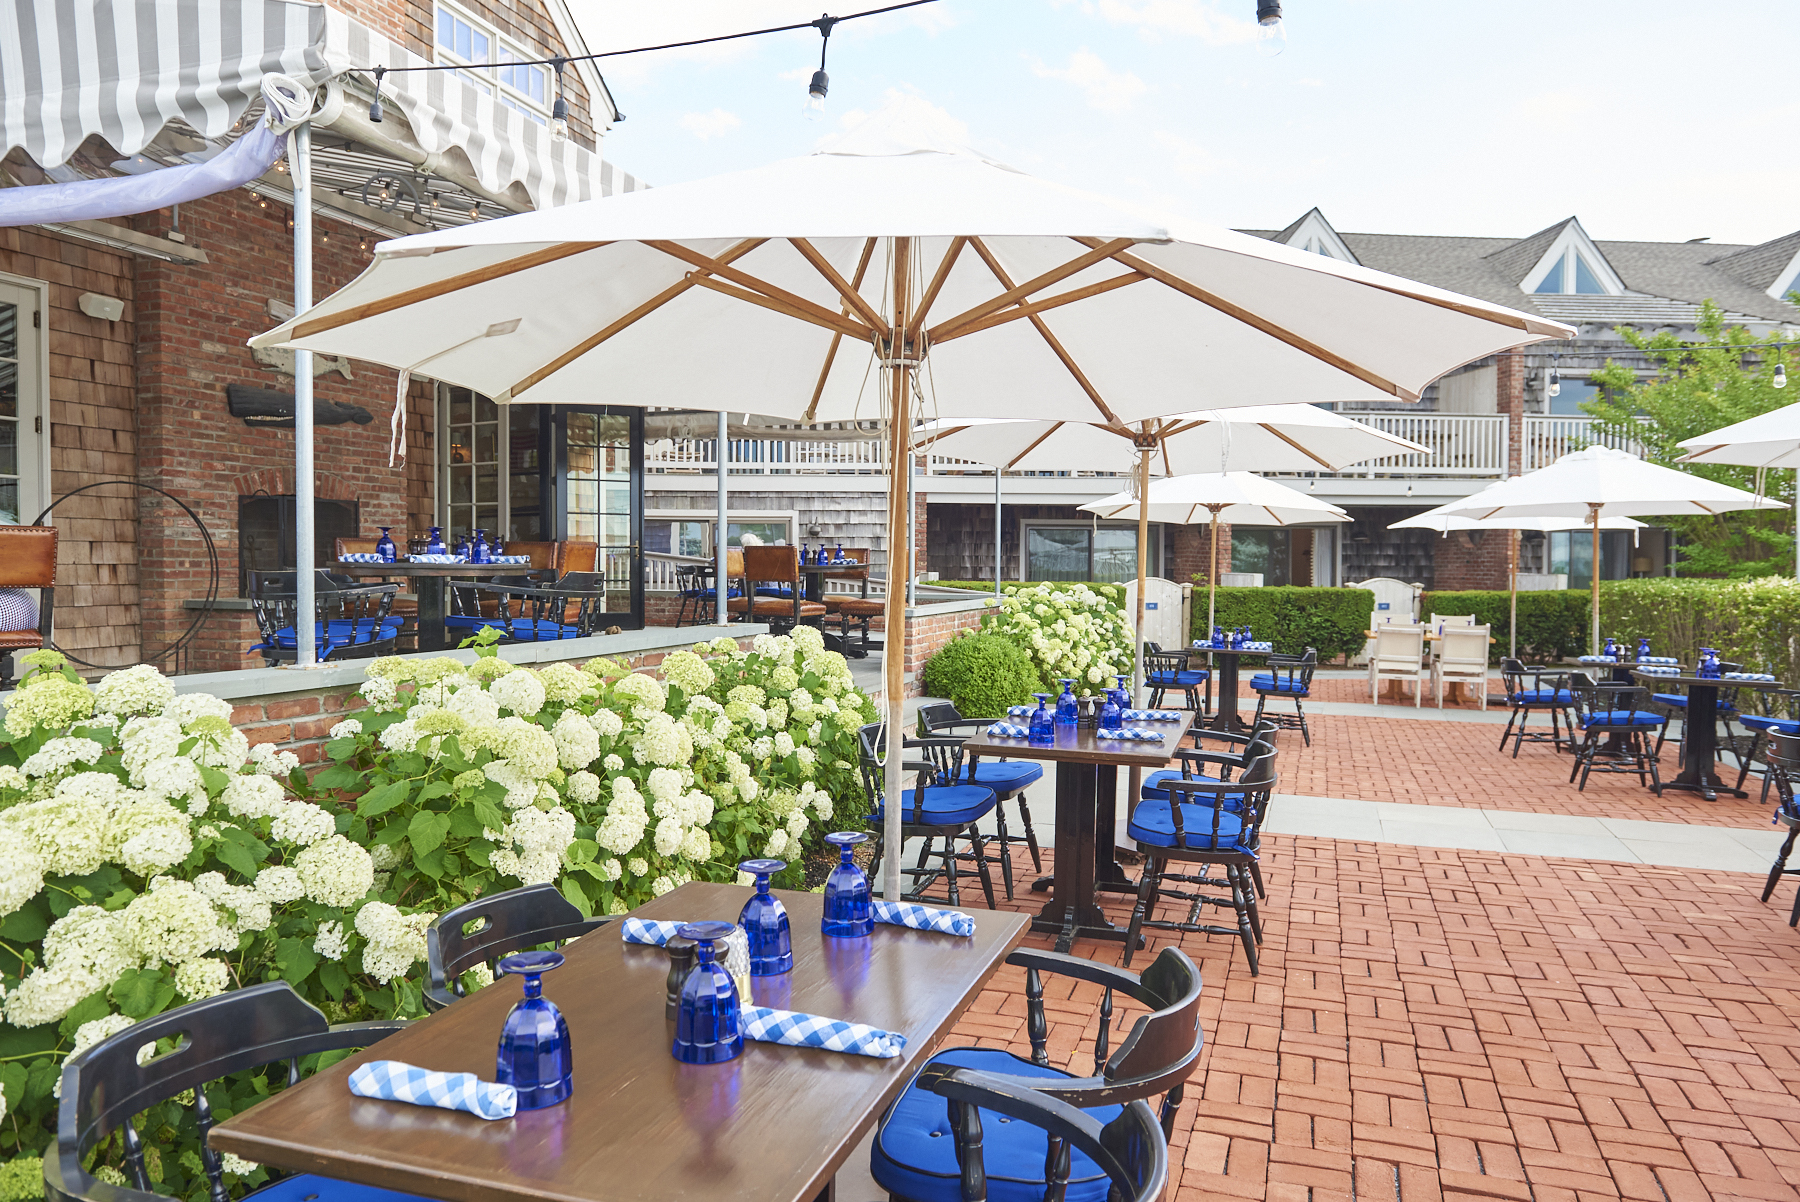 Outdoor dining at Baron's Cove.